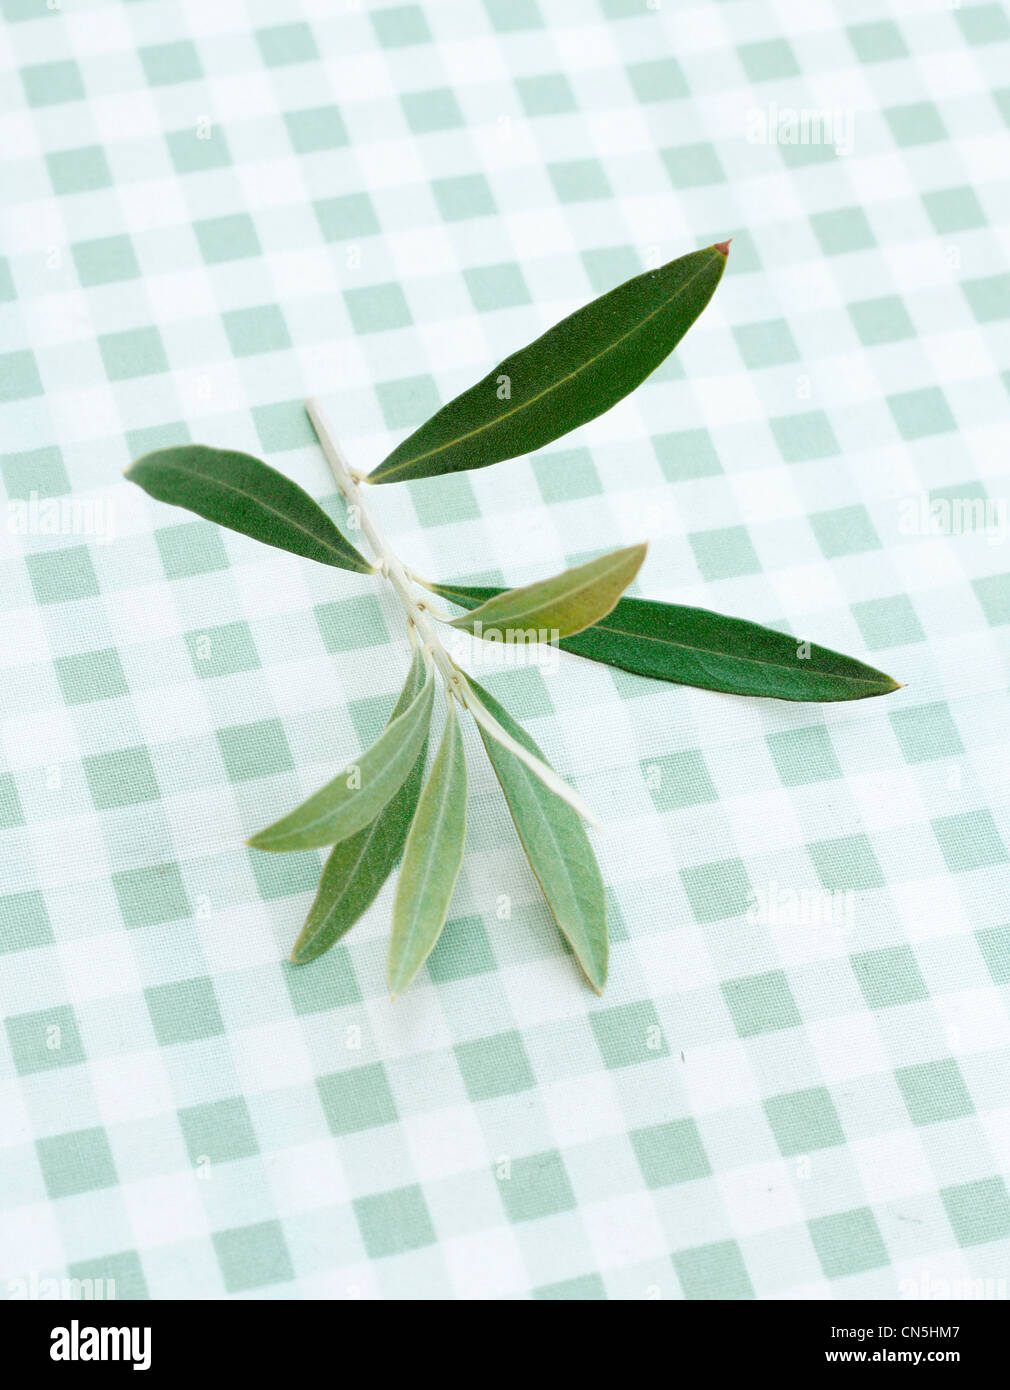 Olive Vector Stock Photos & Olive Vector Stock Images - Alamy